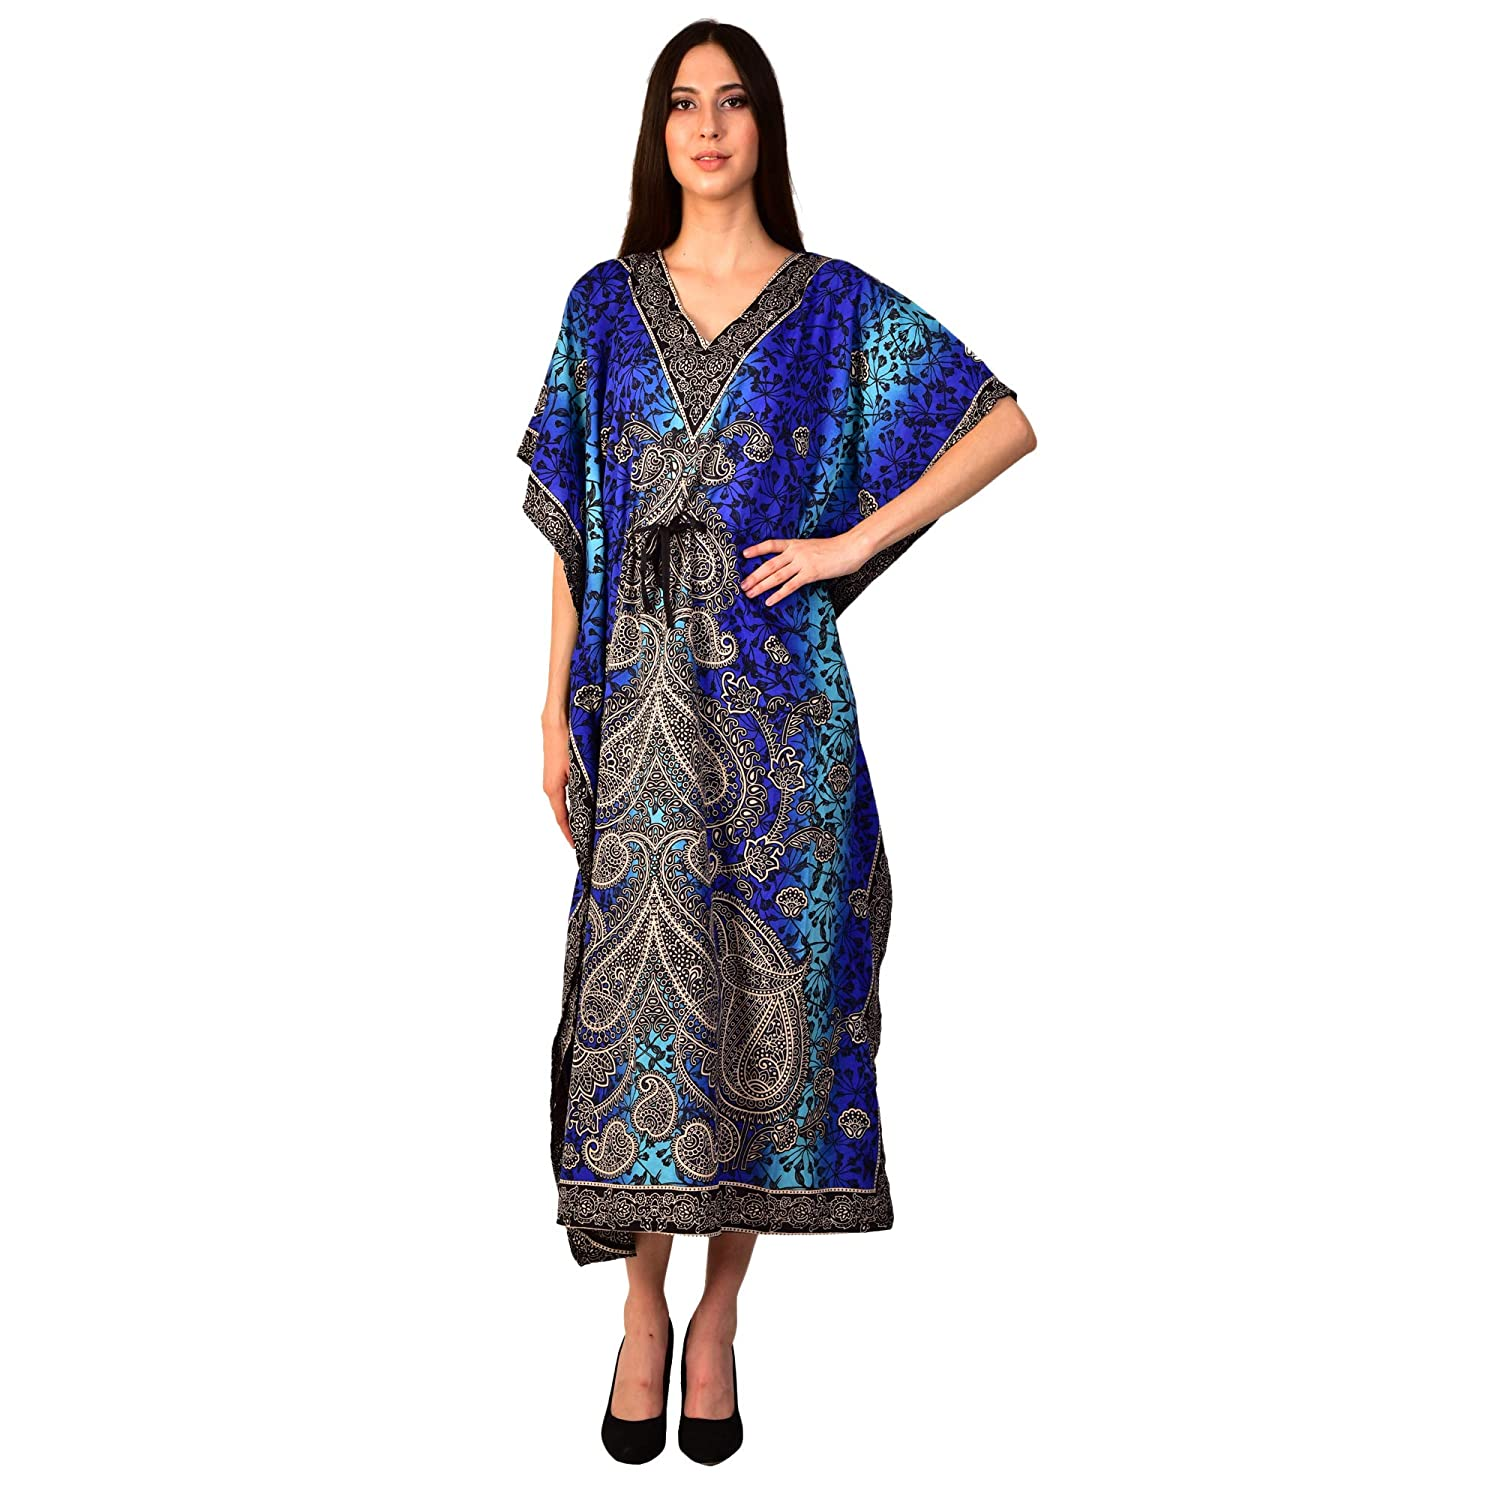 Old Fashioned Dresses | Old Dress Styles eloria Womens Paisley Print Blue Kaftan Maxi Dress Summer Beach Dress Caftan $10.99 AT vintagedancer.com